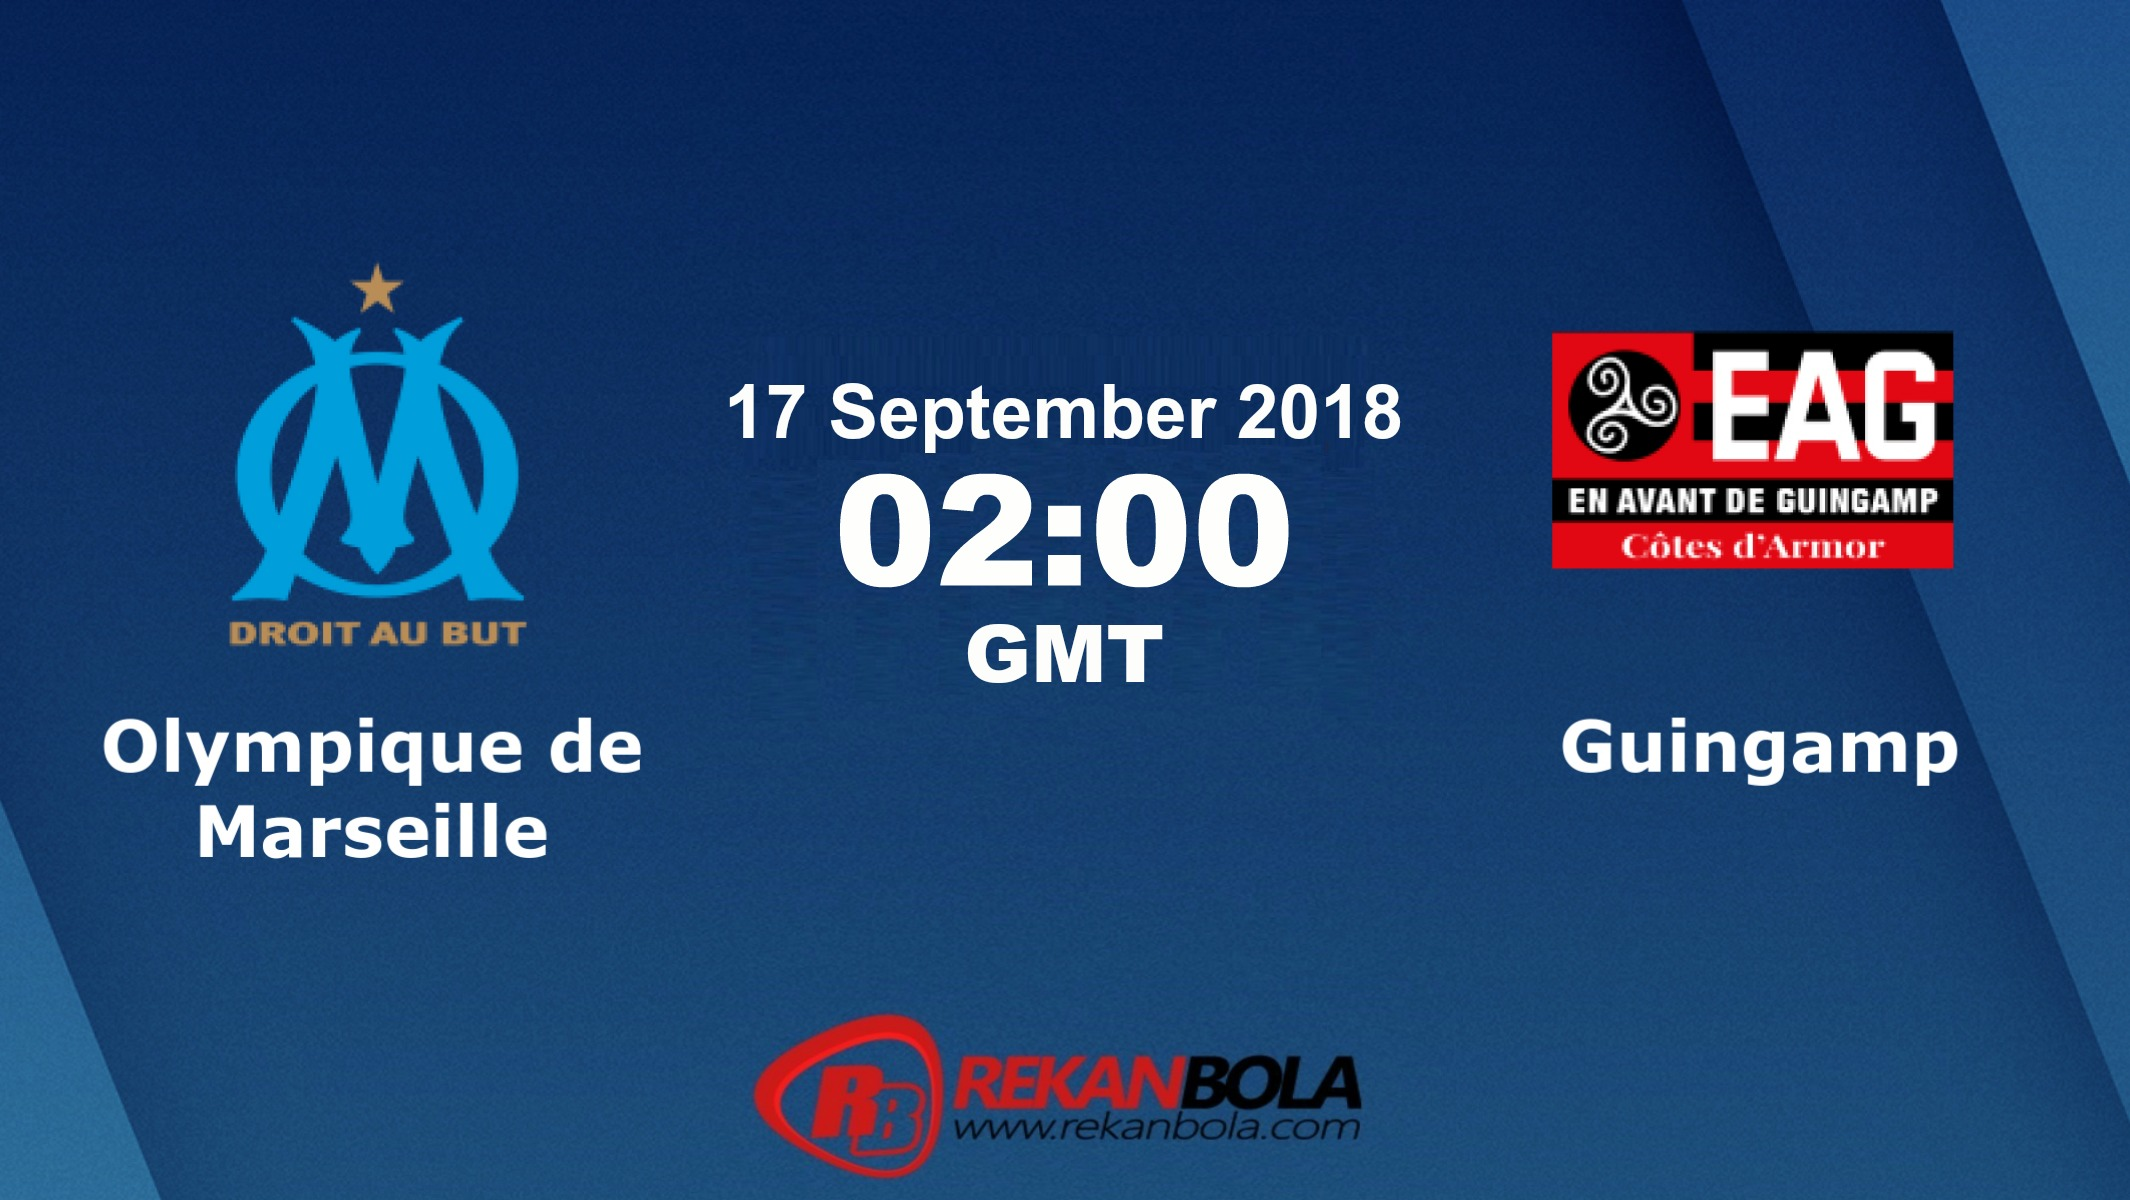 Nonton Siaran Live Streaming Marseille Vs Guingamp 17 September 2018